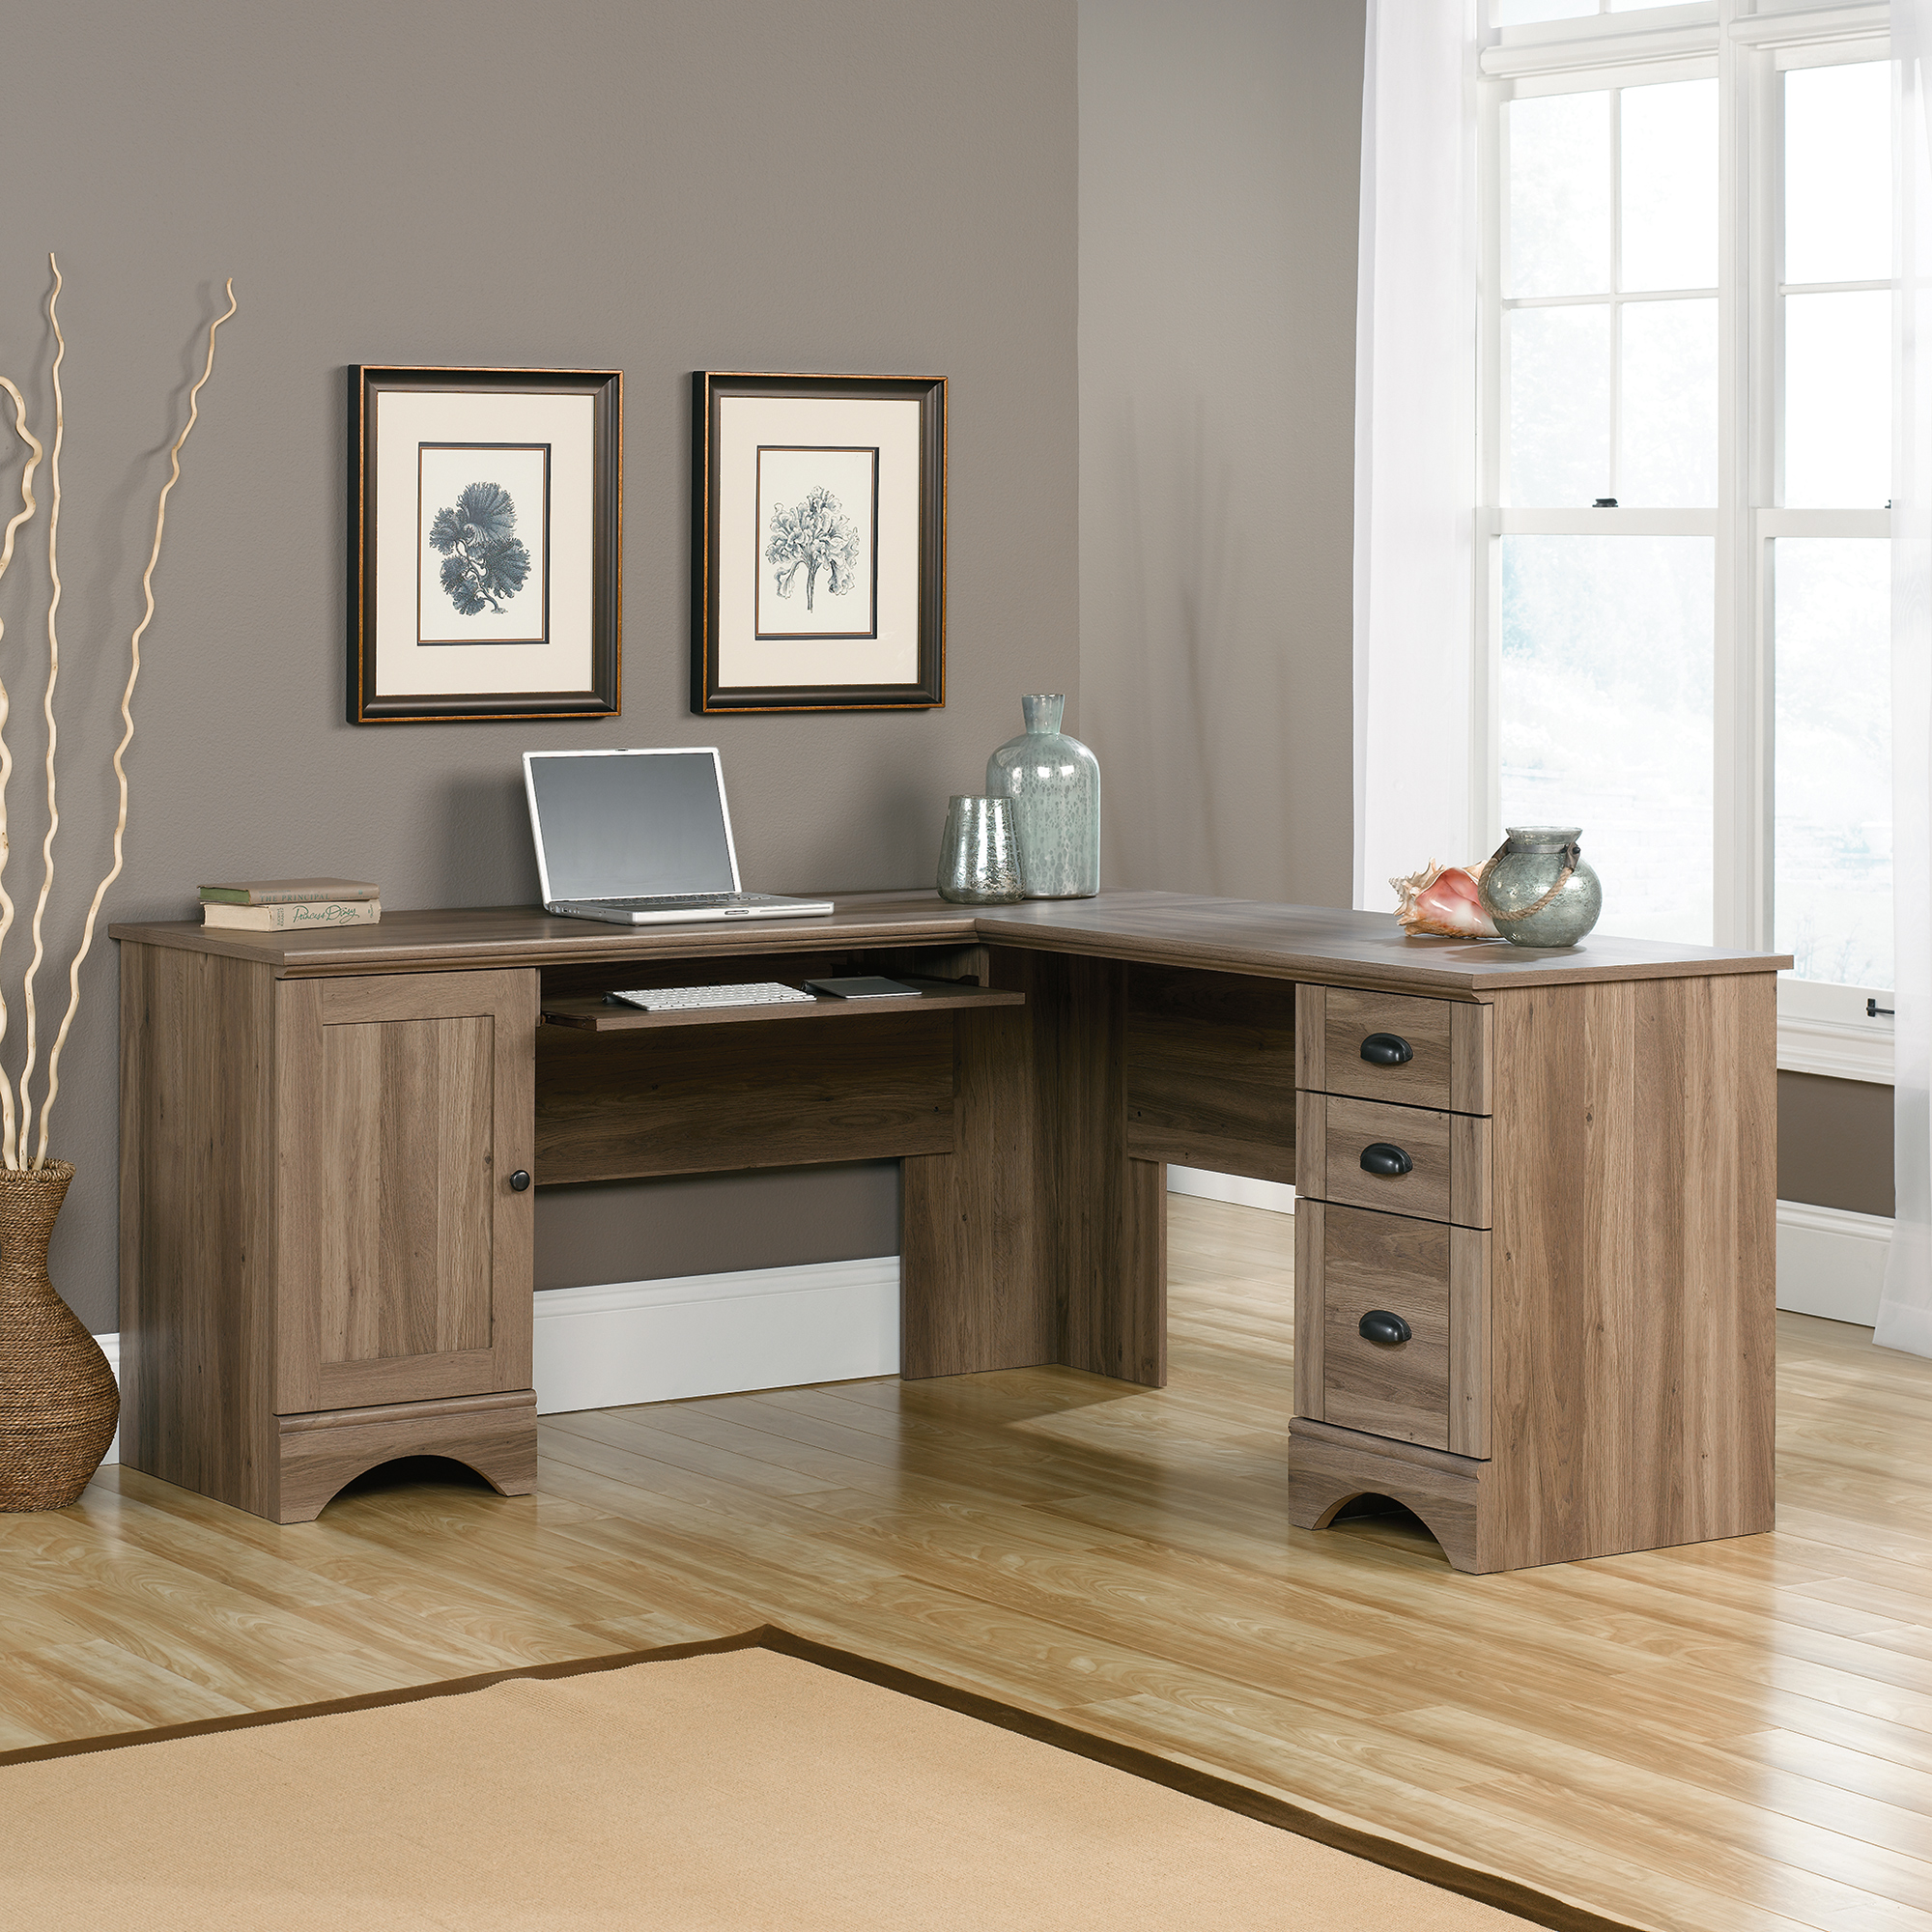 Perfect use of available space with corner computer desk